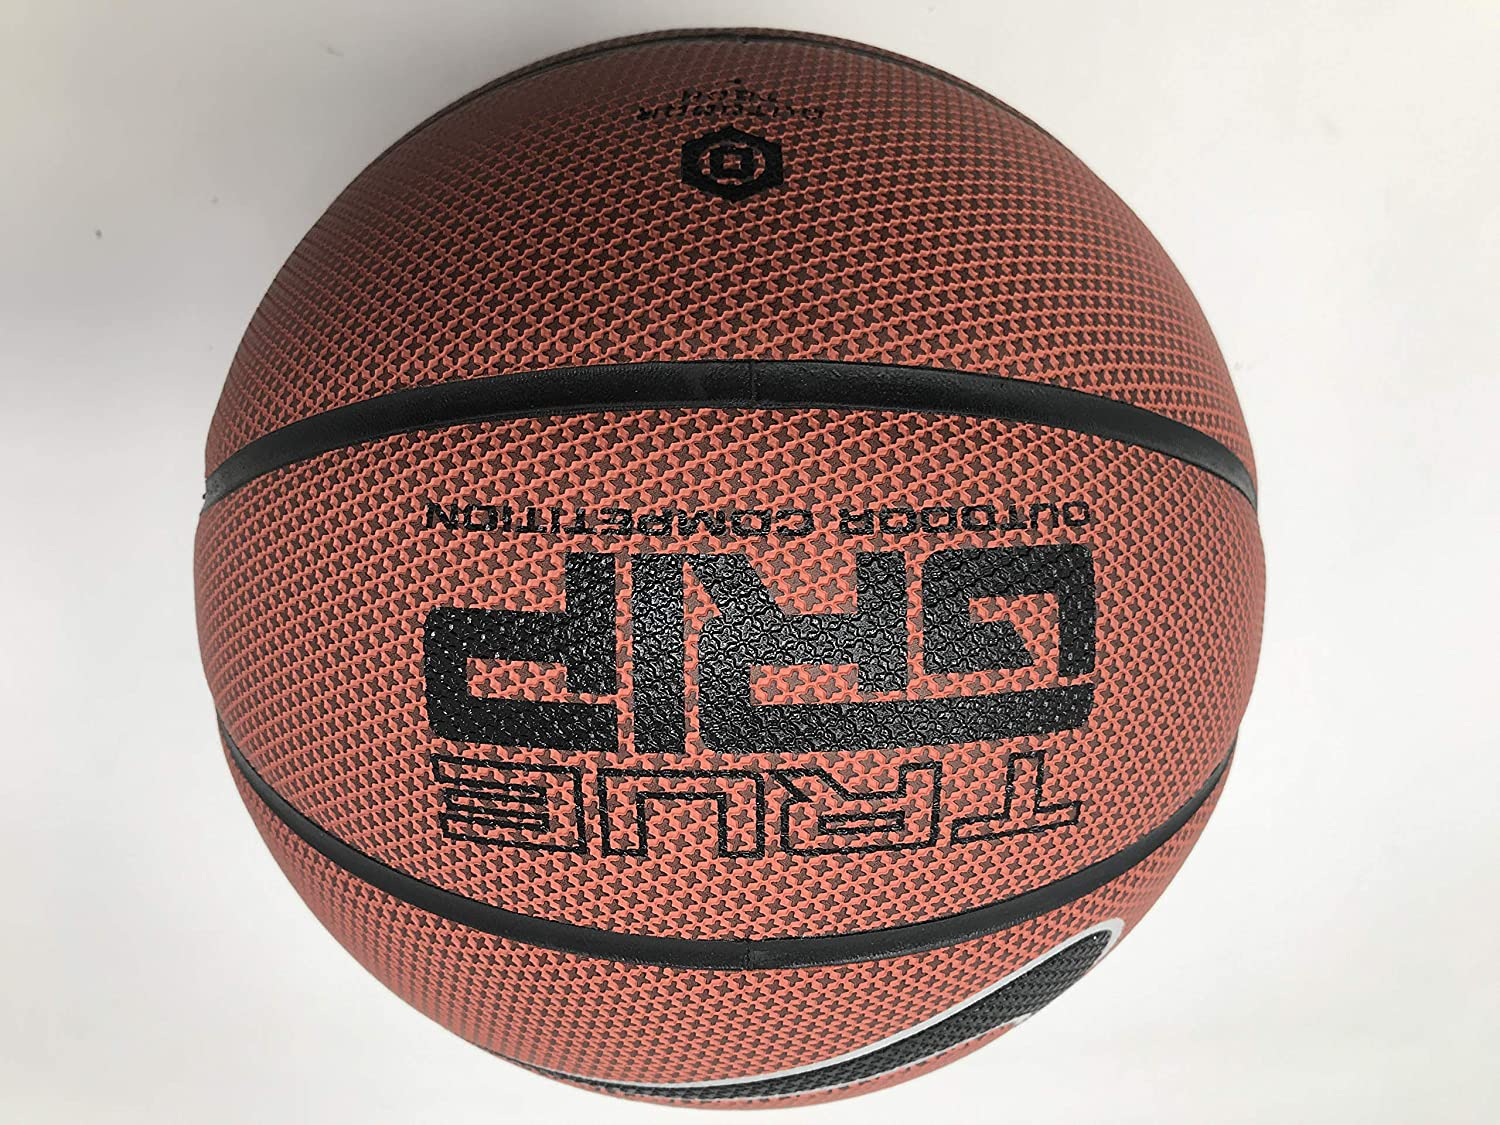 new products 9aac0 81c39 Amazon.com   NIKE True Grip Basketball (28.5